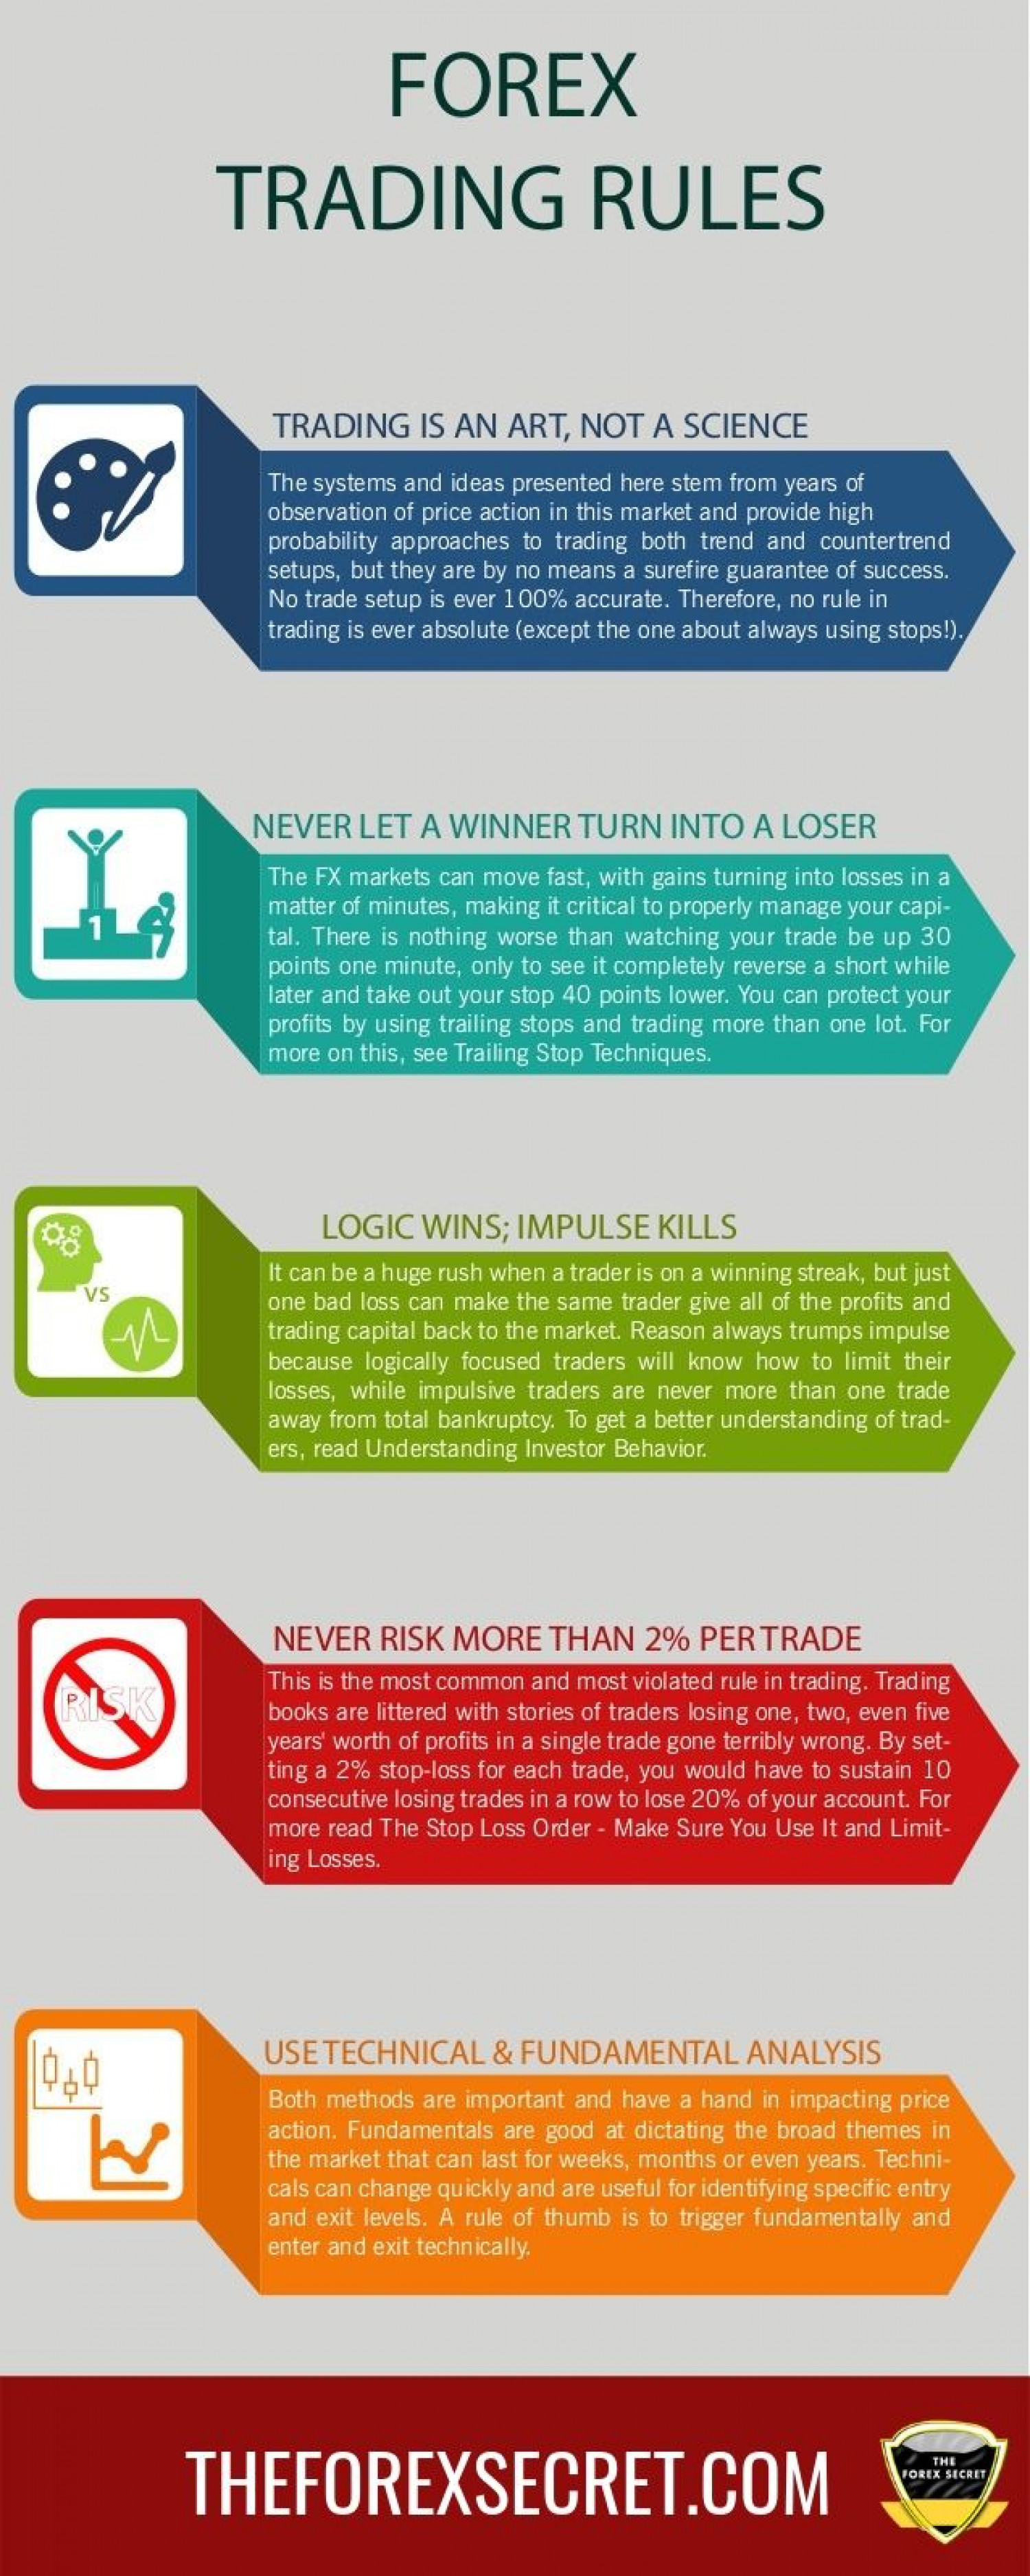 Forex Trading Rules Infographic